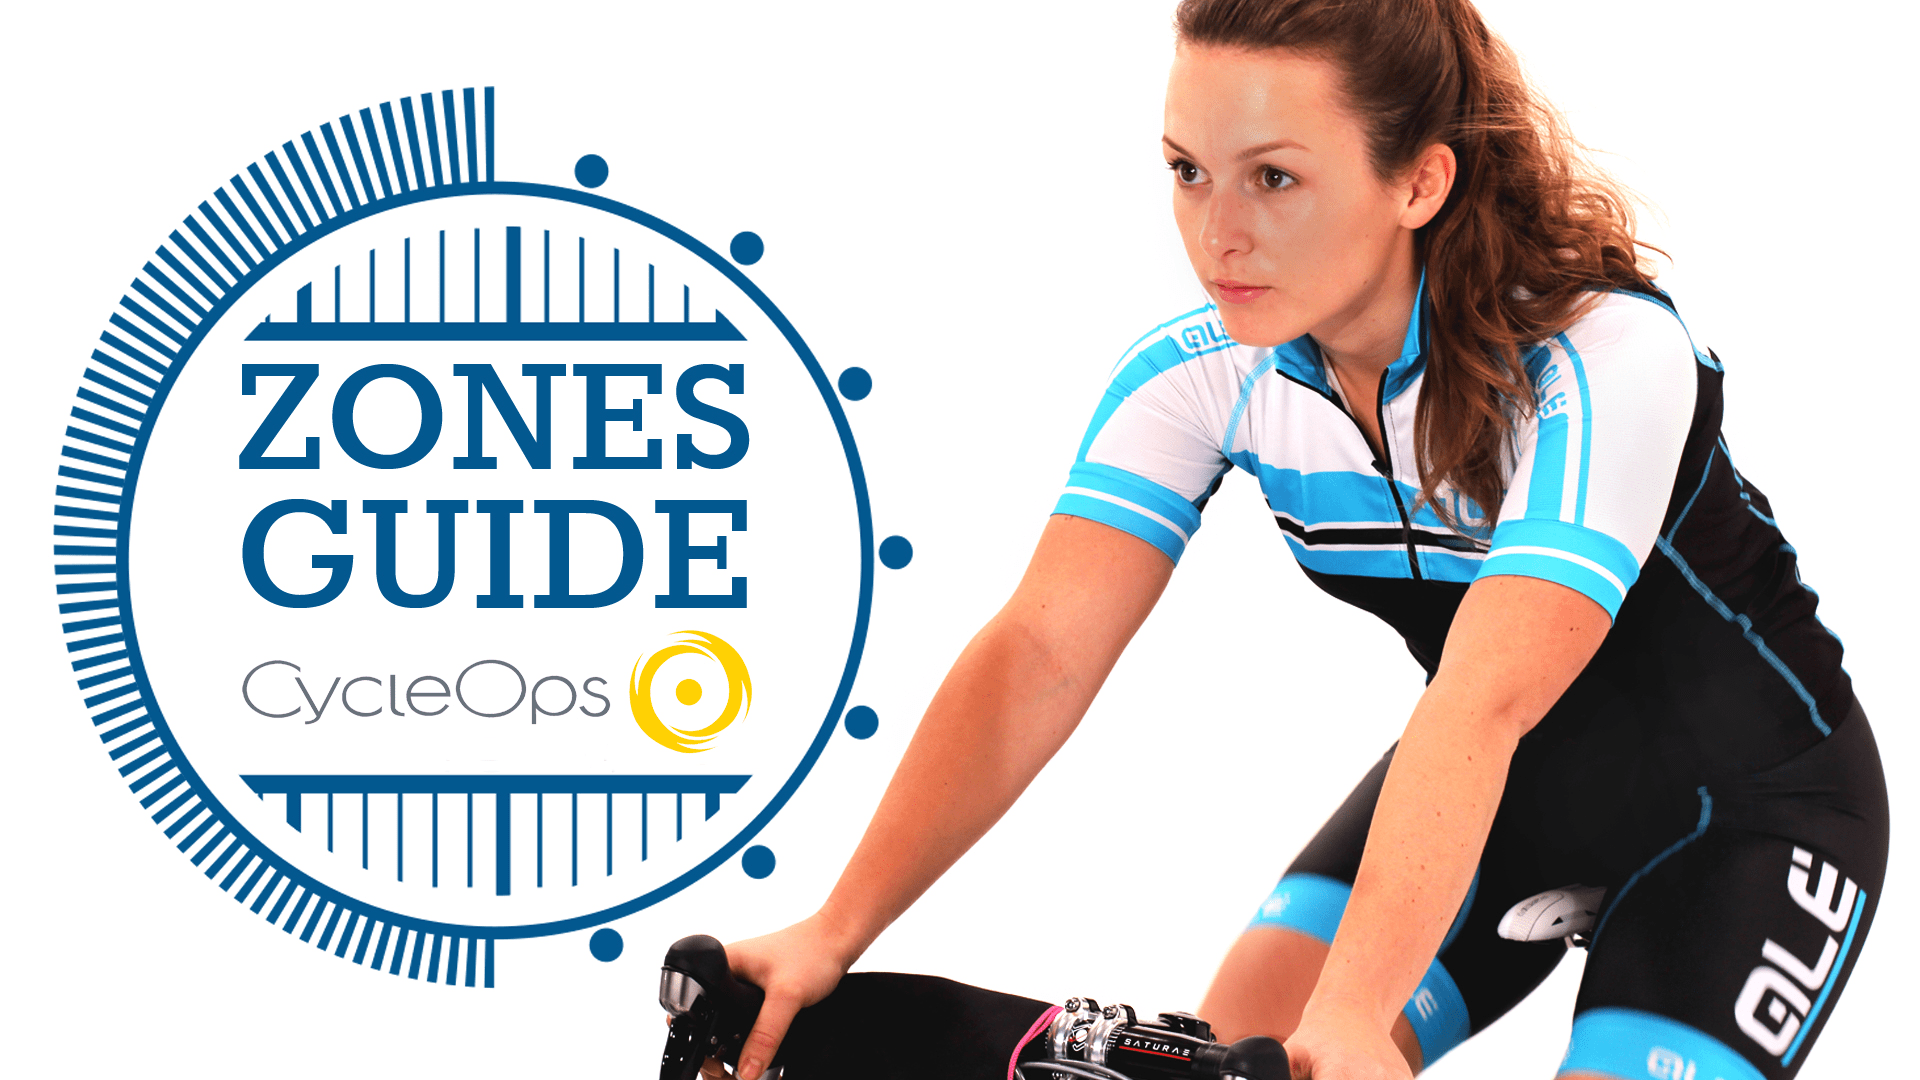 Heart rate training zones explained